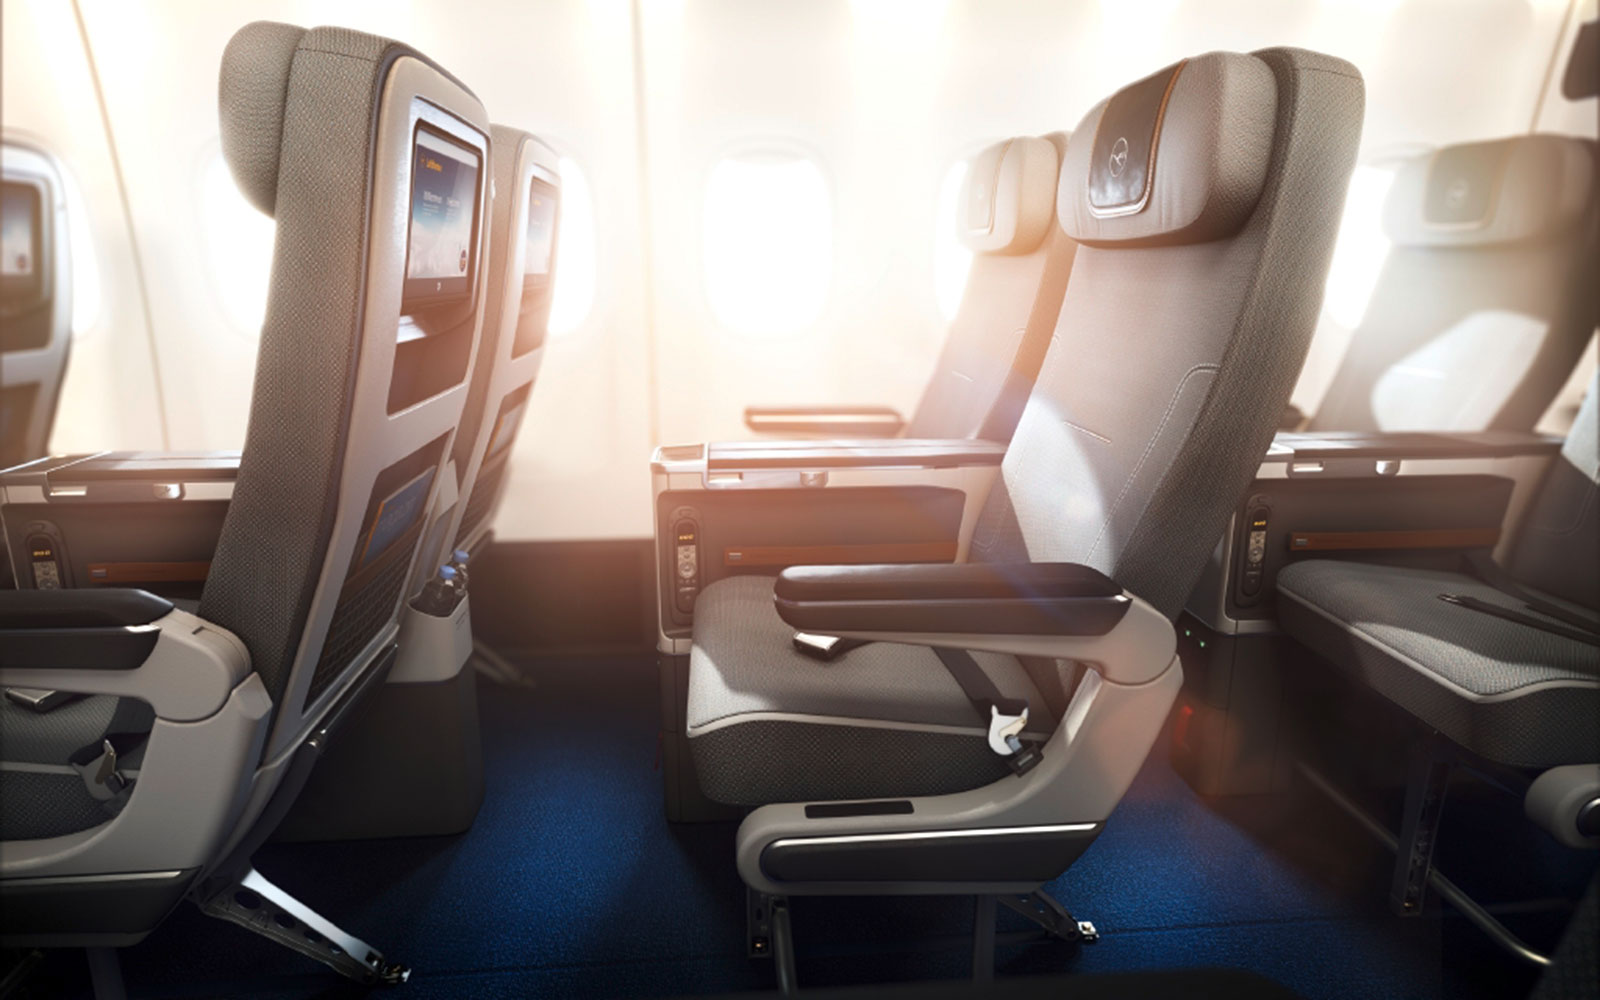 The 13 Best Aircraft Cabin Innovations Ever: Premium Economy